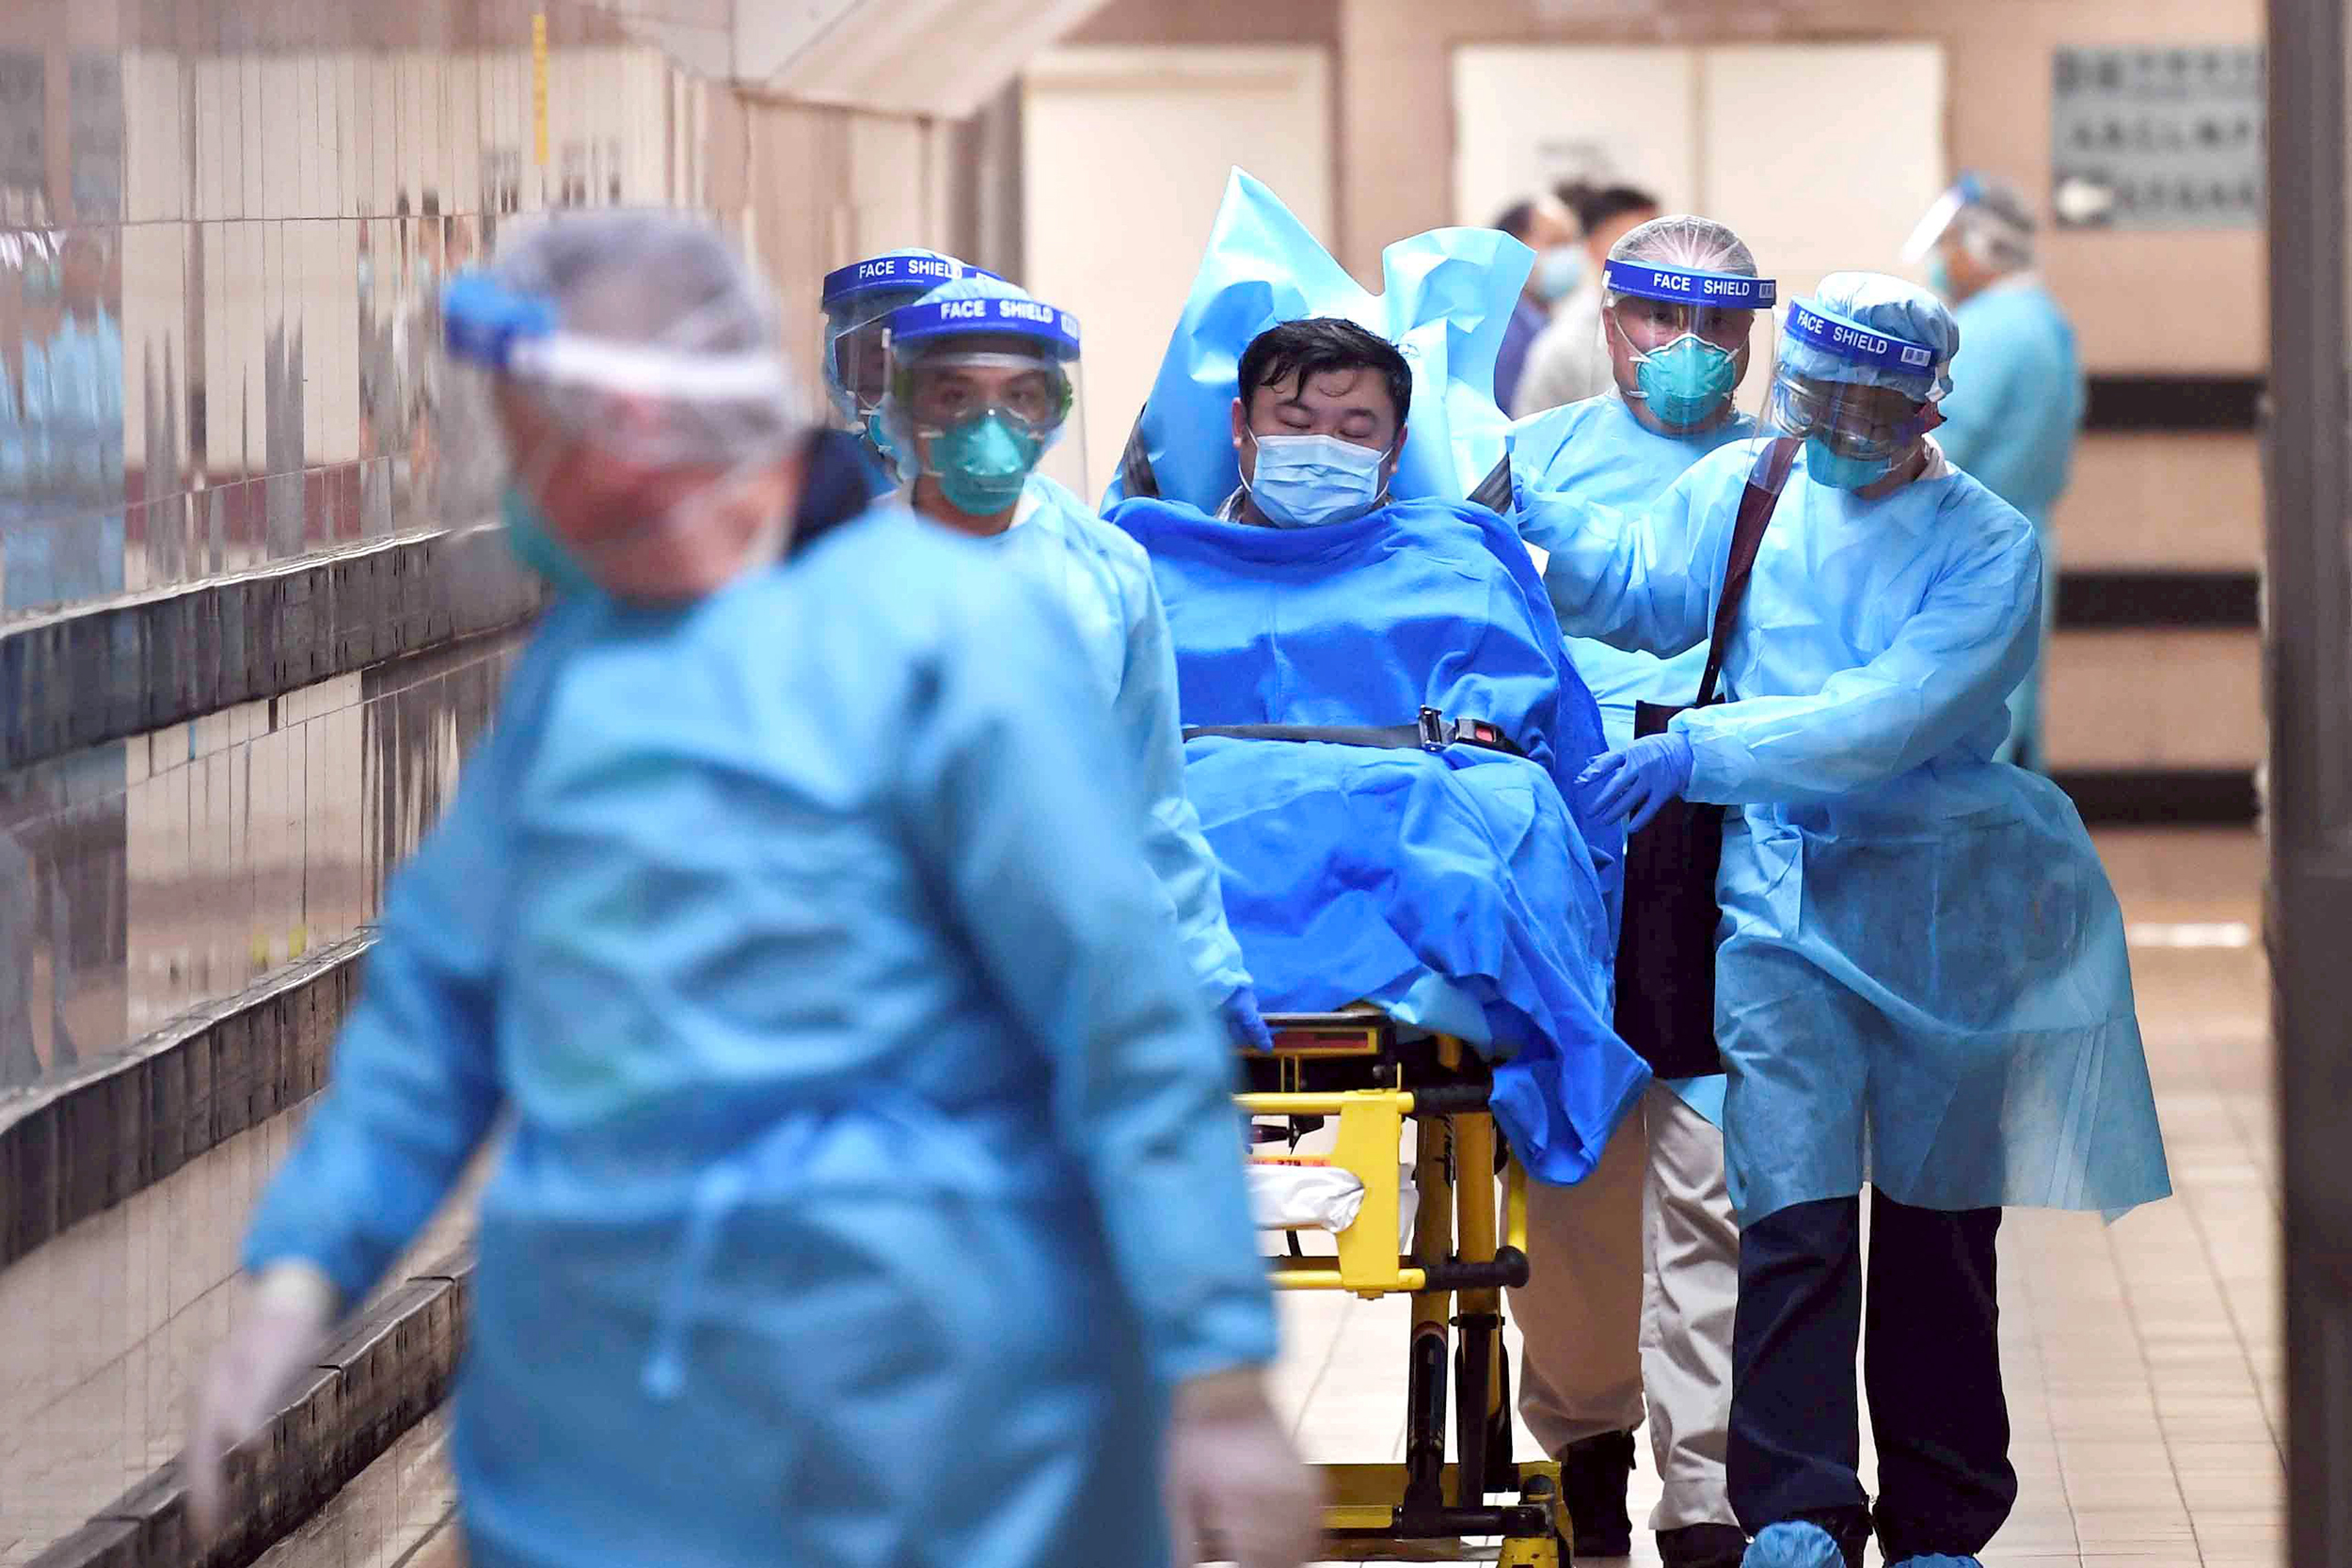 Image: Medical staff transfer a patient of a highly suspected case of a new coronavirus at the Queen Elizabeth Hospital in Hong Kong